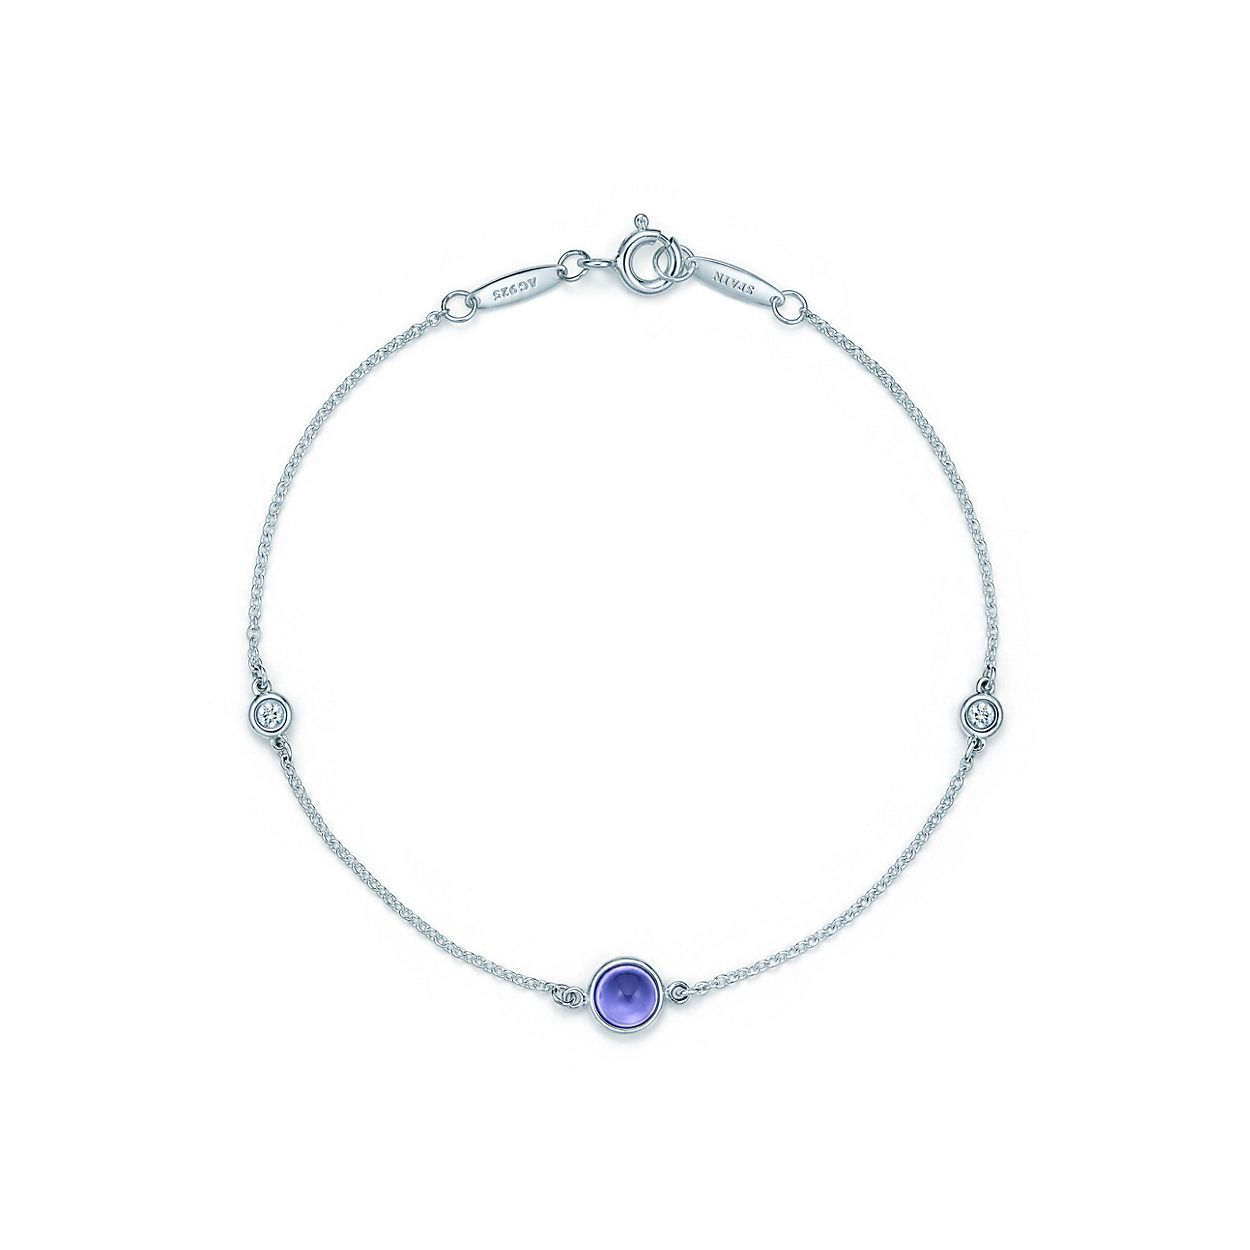 silver rocks free glitzy round product watches today shipping sterling tanzanite tennis overstock jewelry bracelet